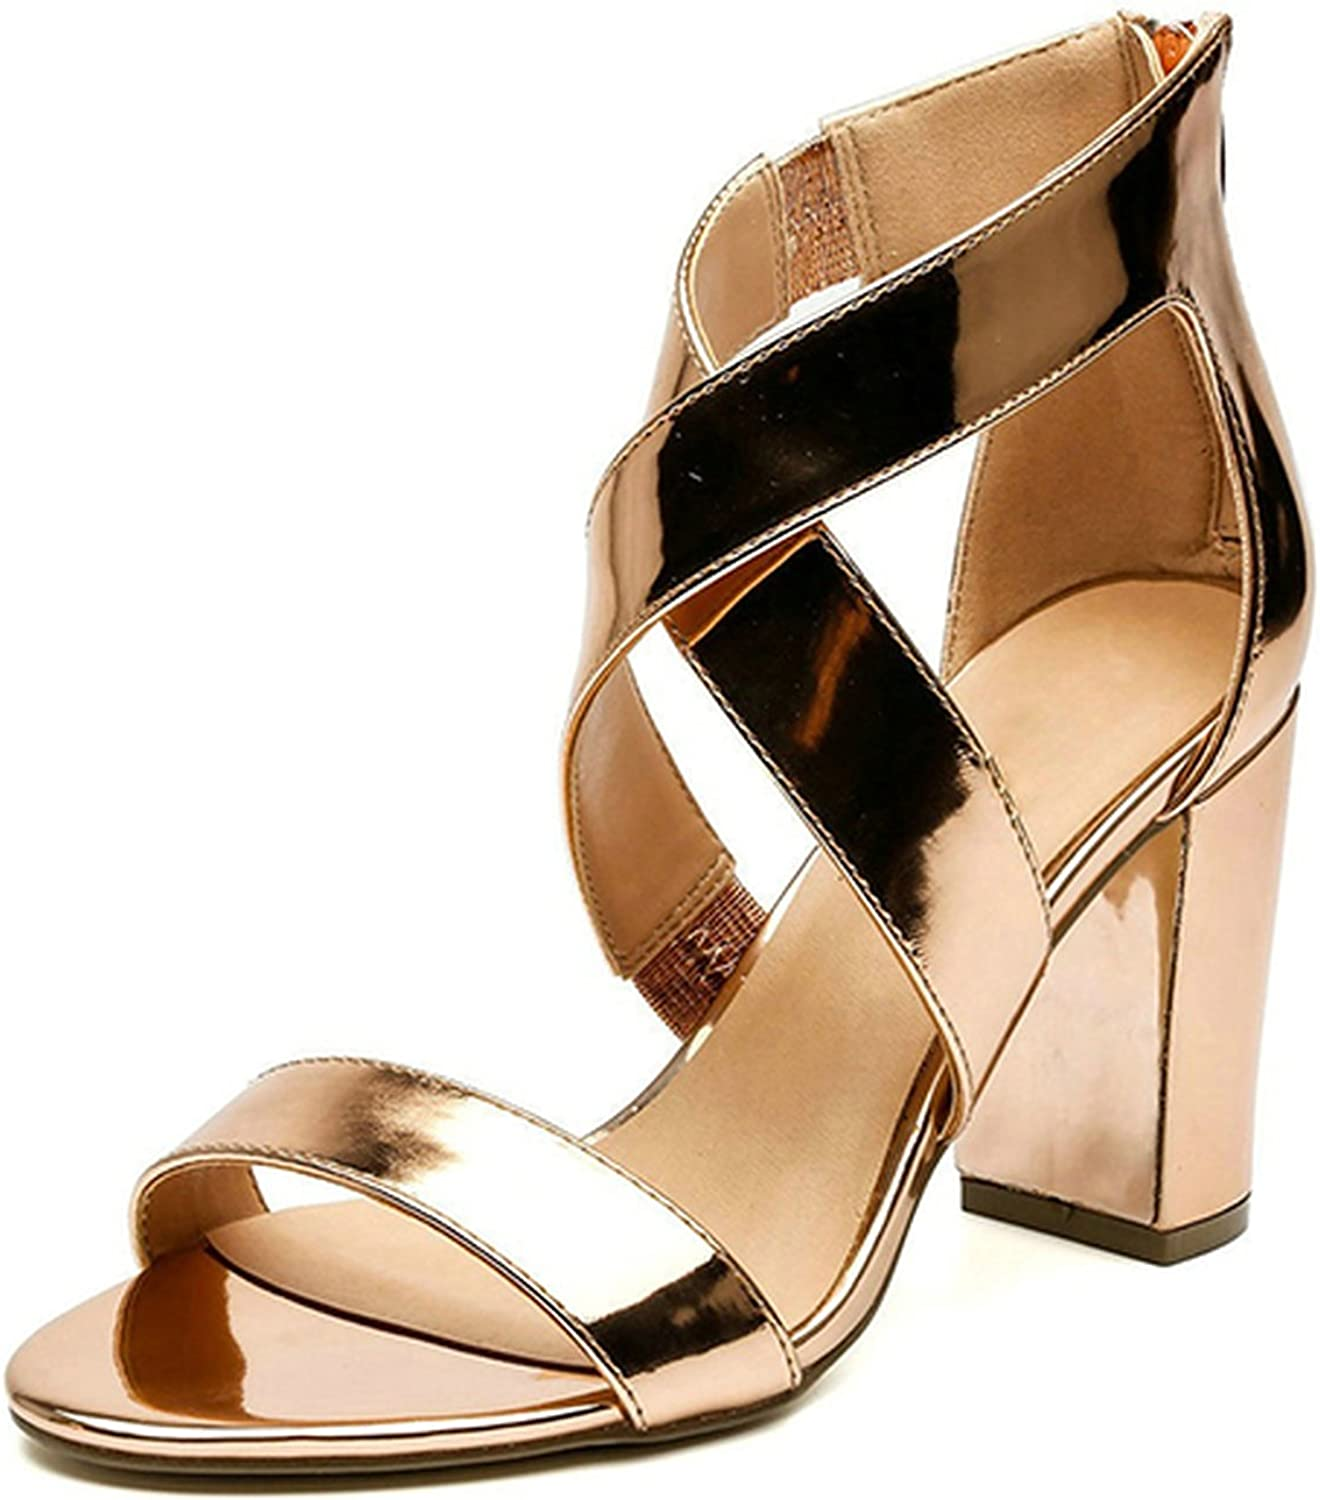 2018 Summer Women High Heels Open Toe Ankle Strap shoes Thick Heel Plus Size Sandals